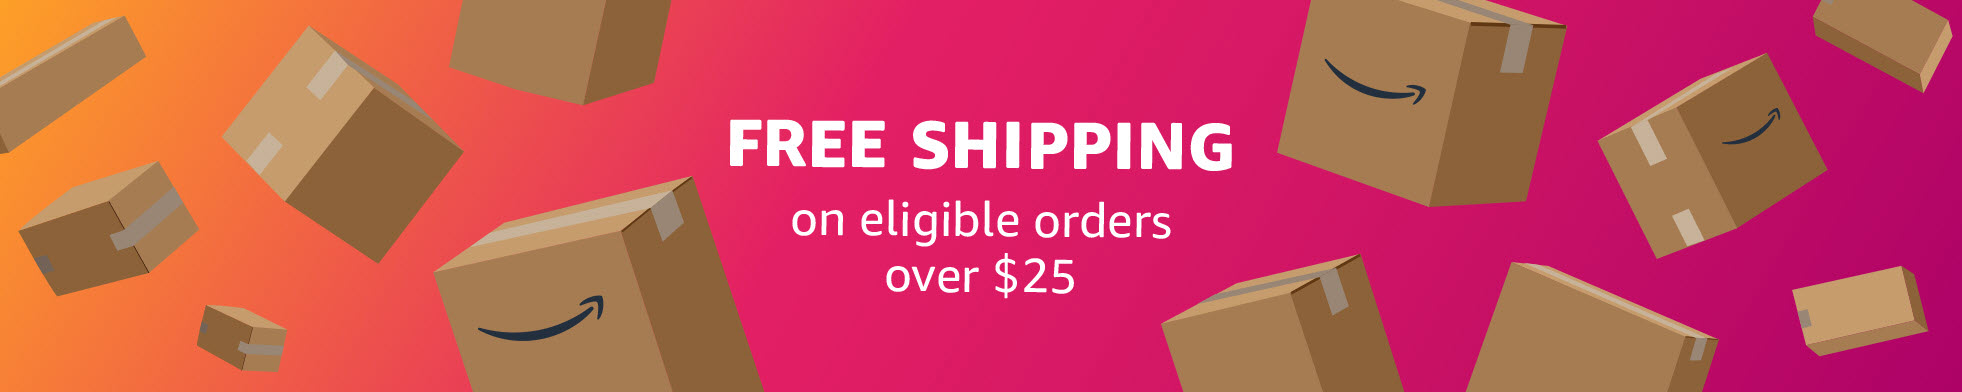 FREE Shipping on millions of items